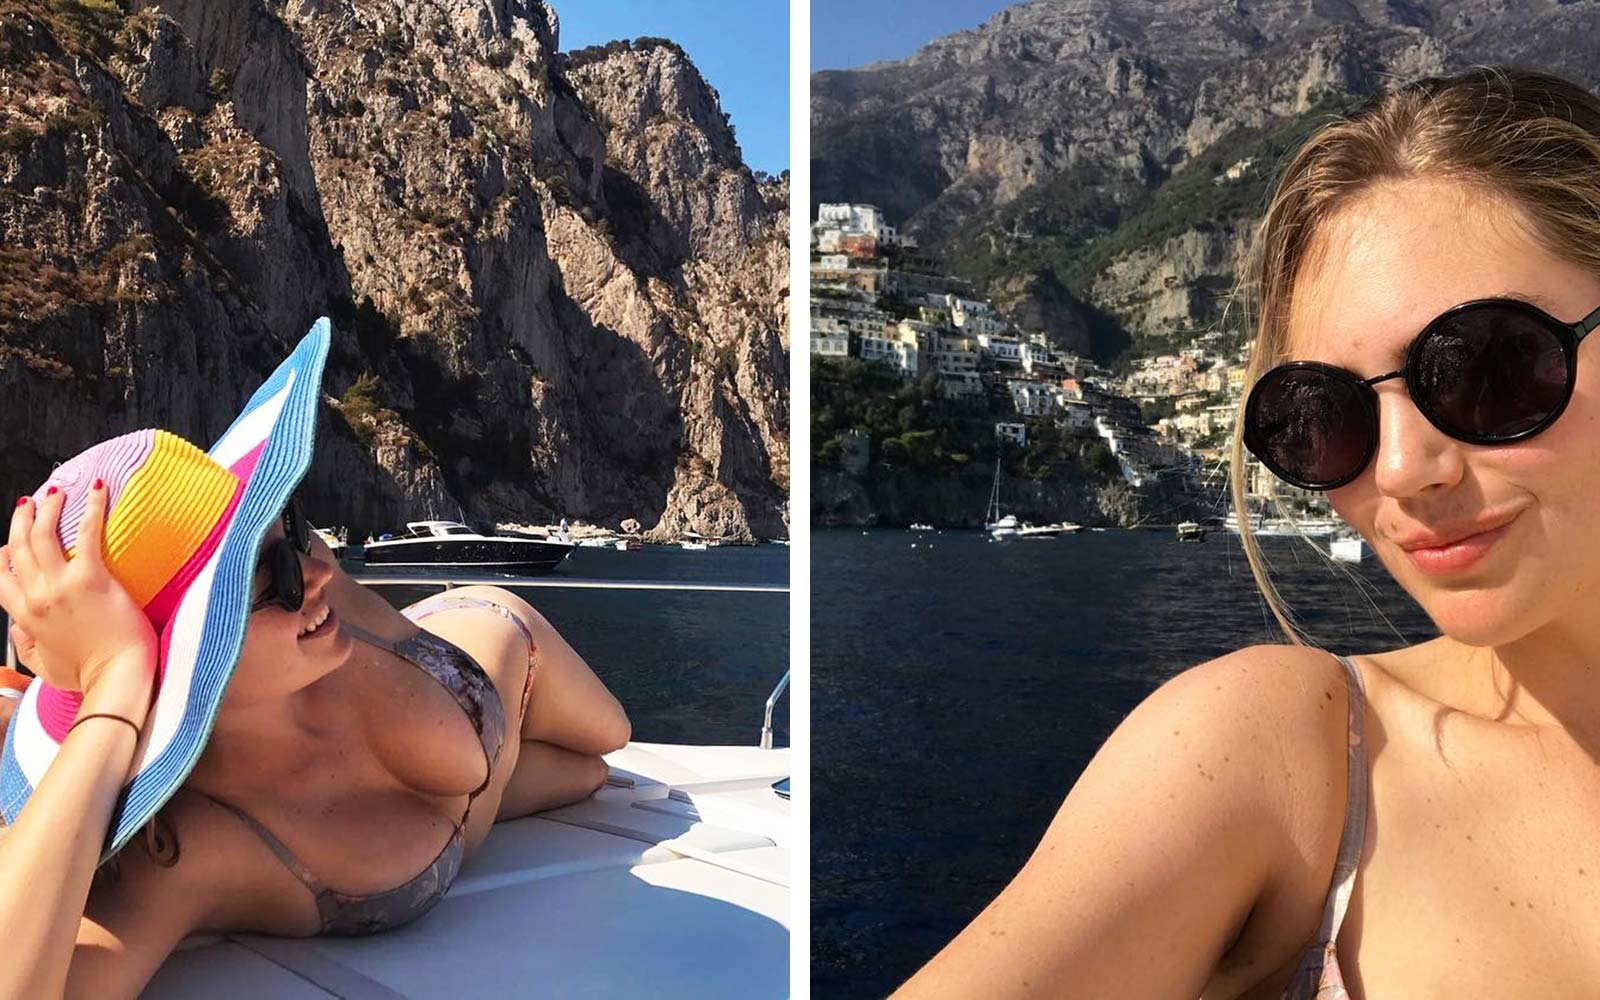 Kate Upton Summer Vacation Holiday Travel Capri Italy Yacht